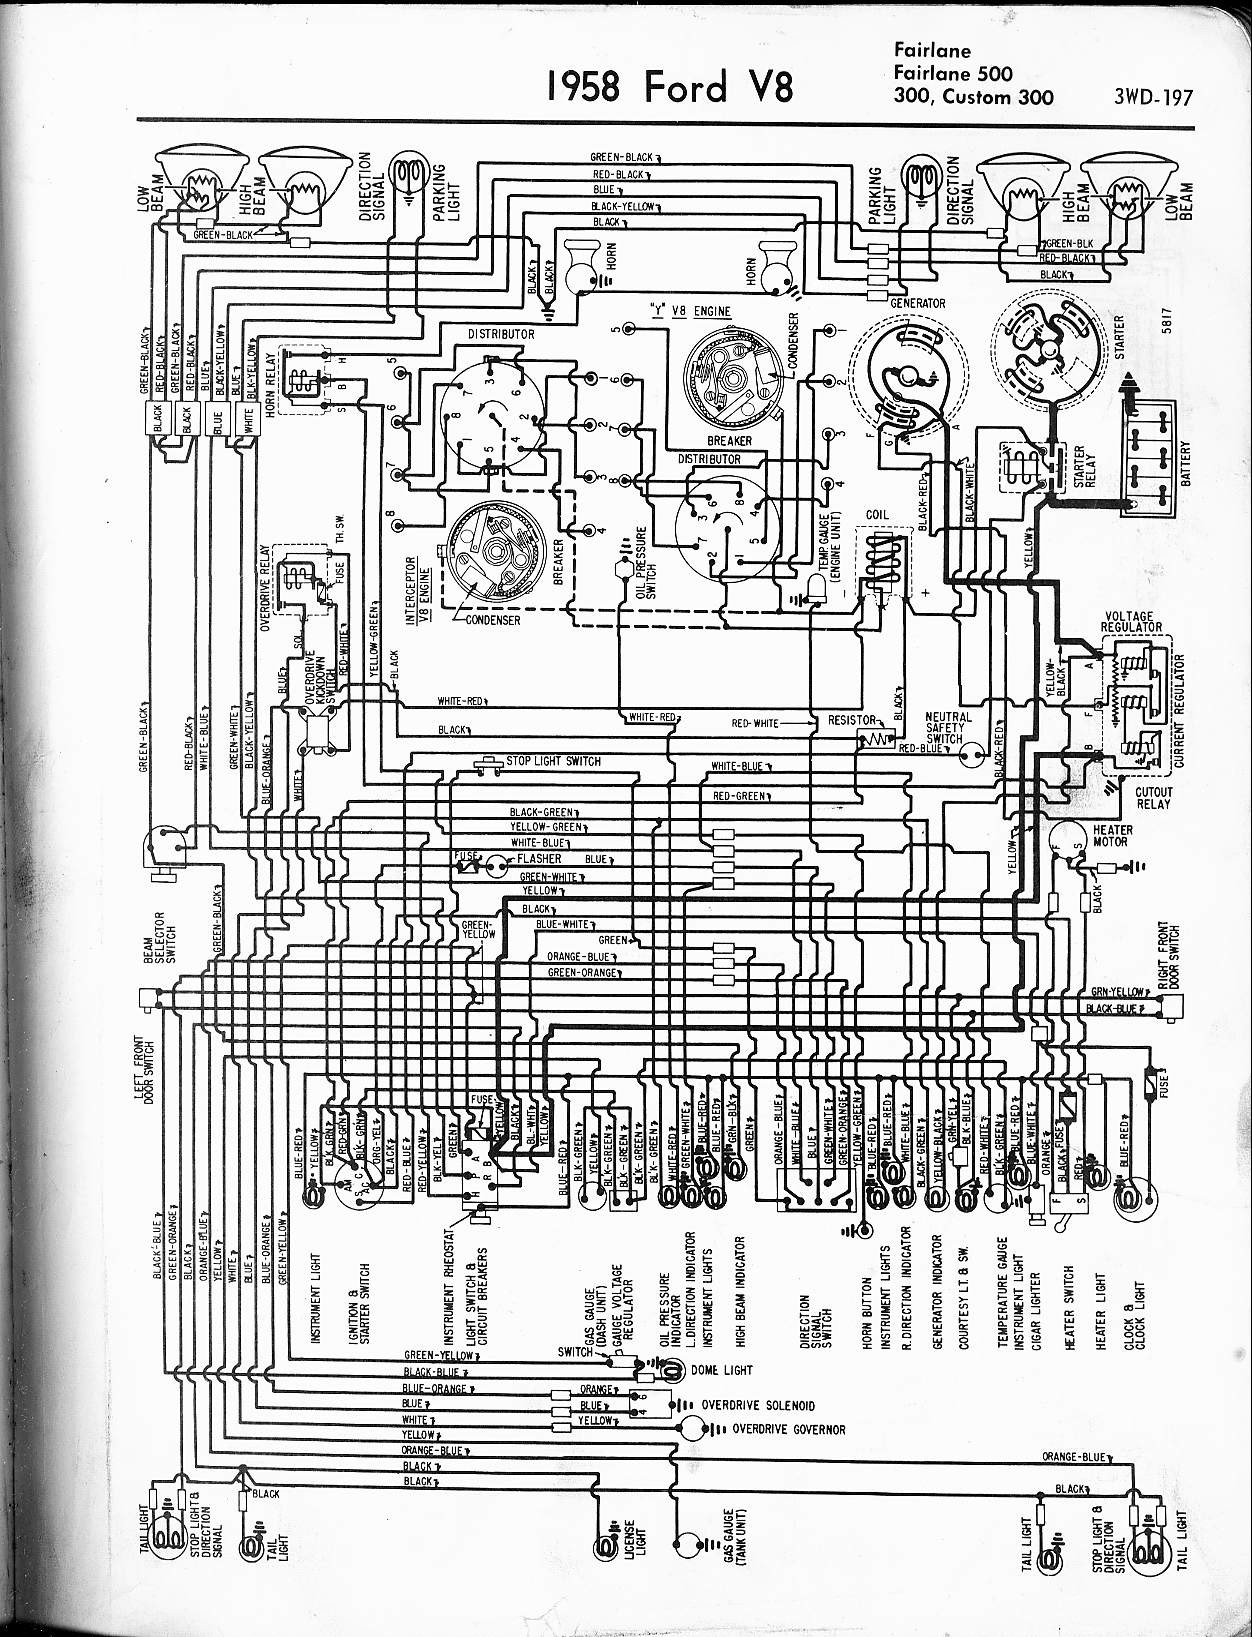 1956 ford wiring harness wiring diagram ignition coil wiring with ballast resistor ford coil wiring new wiring diagrams